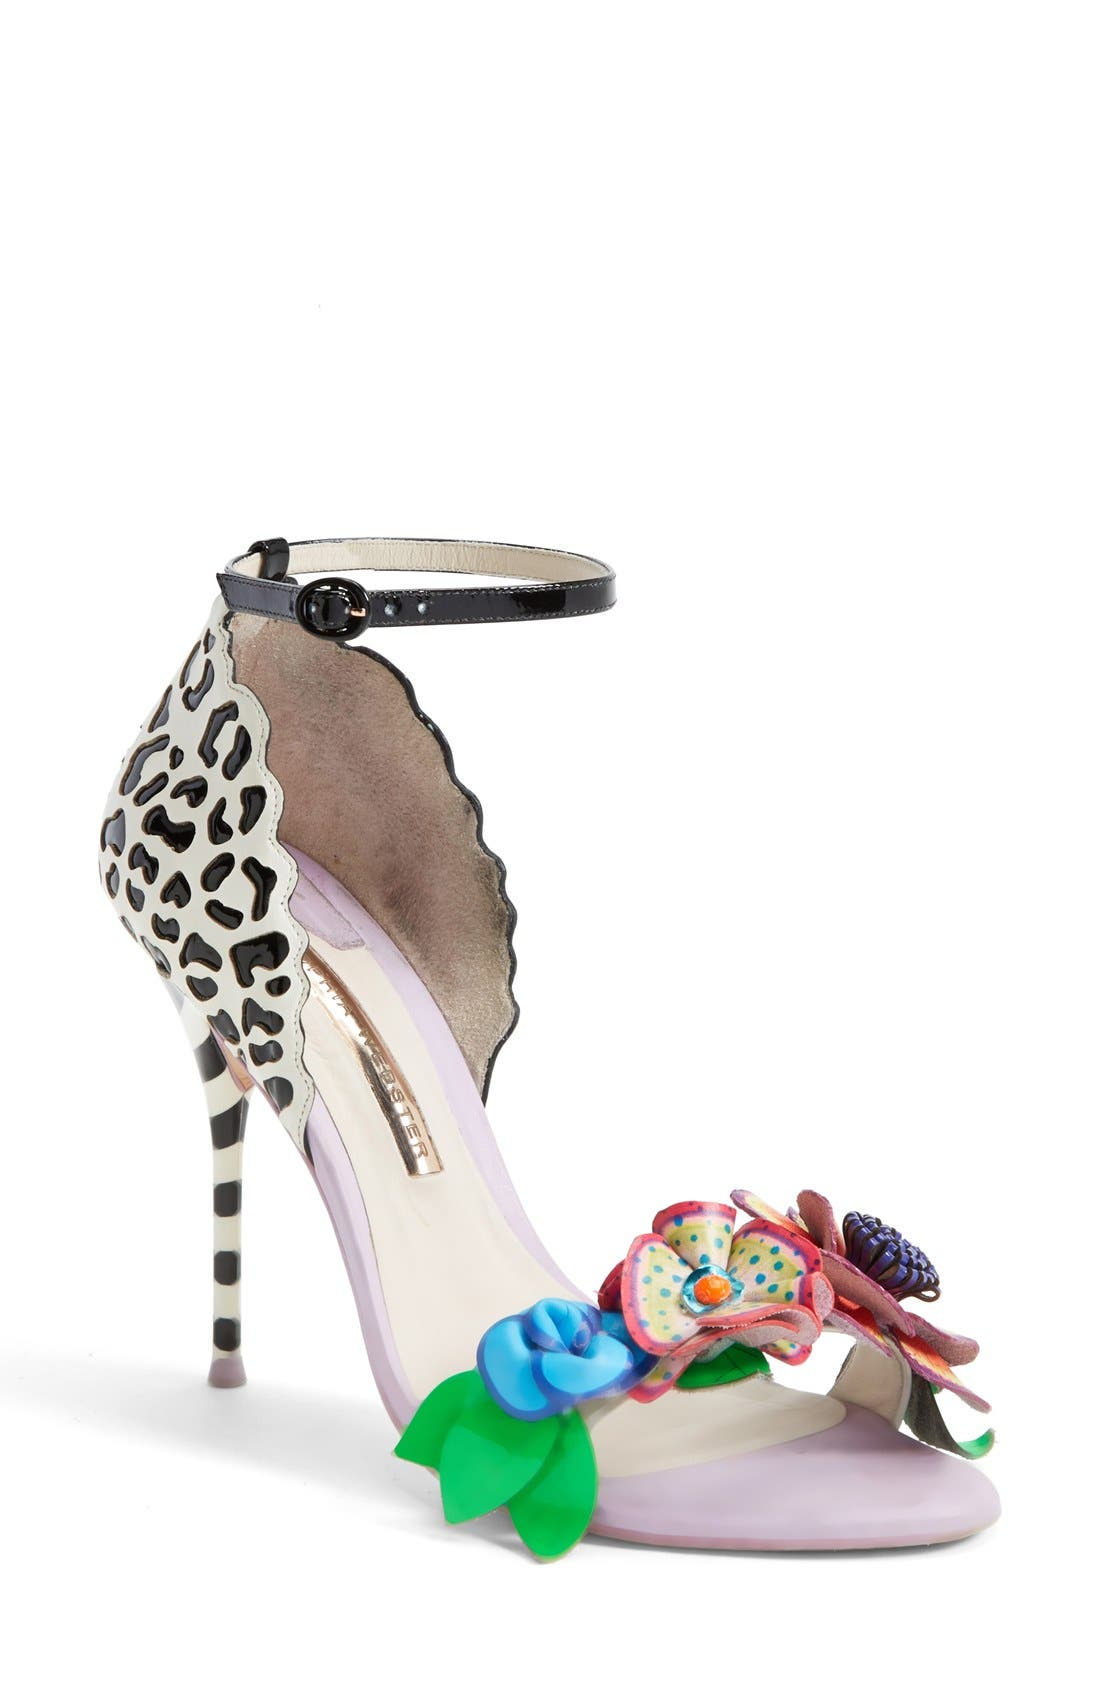 Main Image - Sophia Webster 'Lilico - Jungle' Sandal (Women)